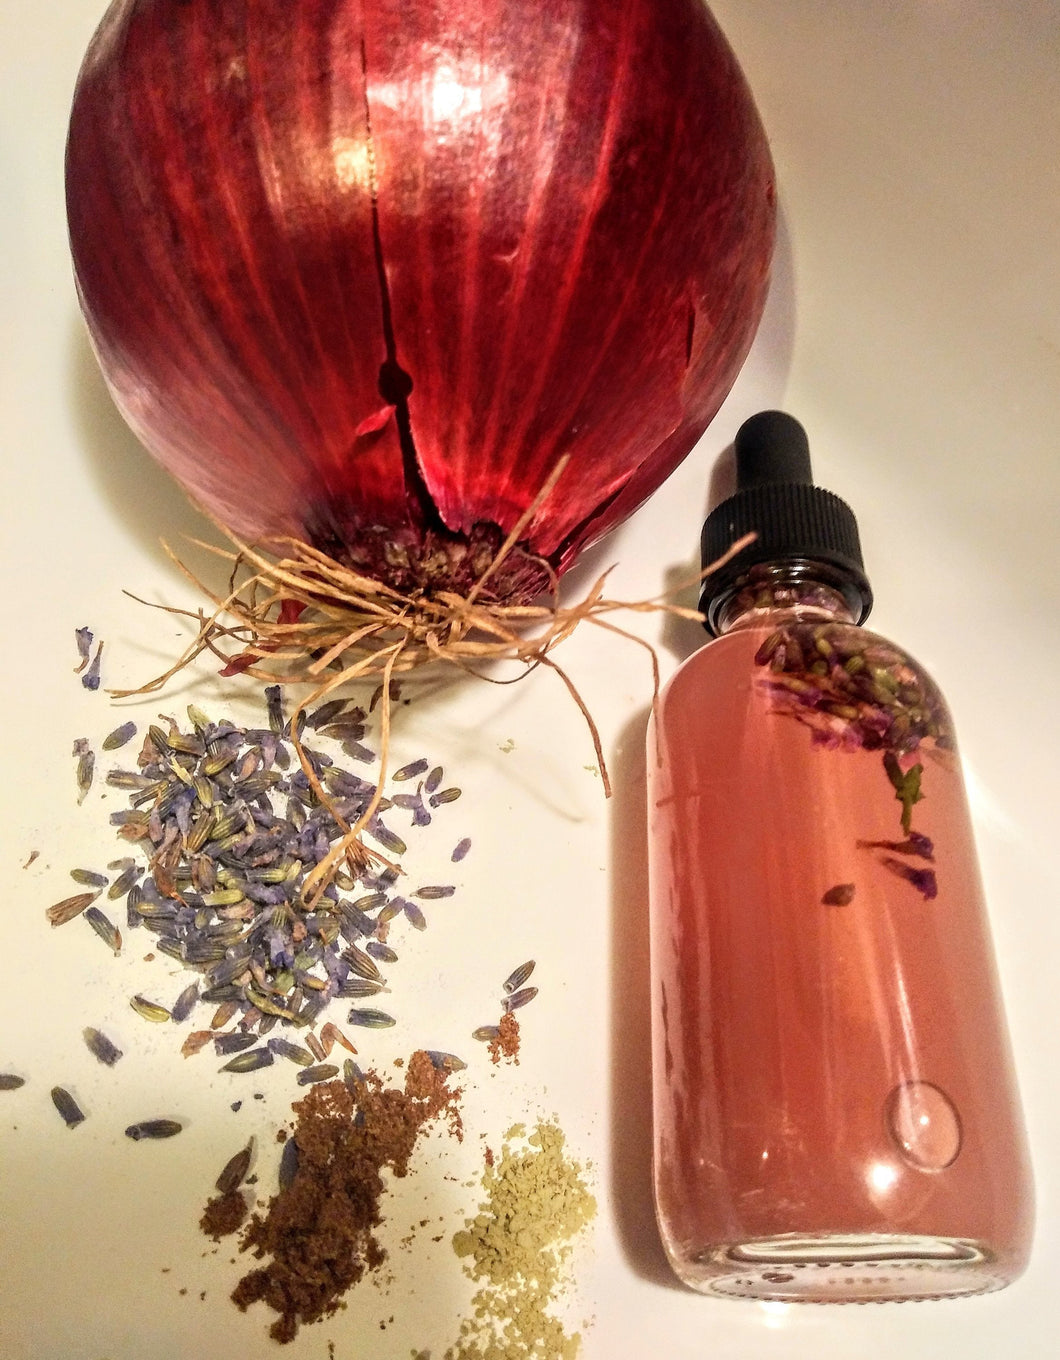 Organic Red Onion Drops (hair loss, edges, bald spots, alopecia areata)